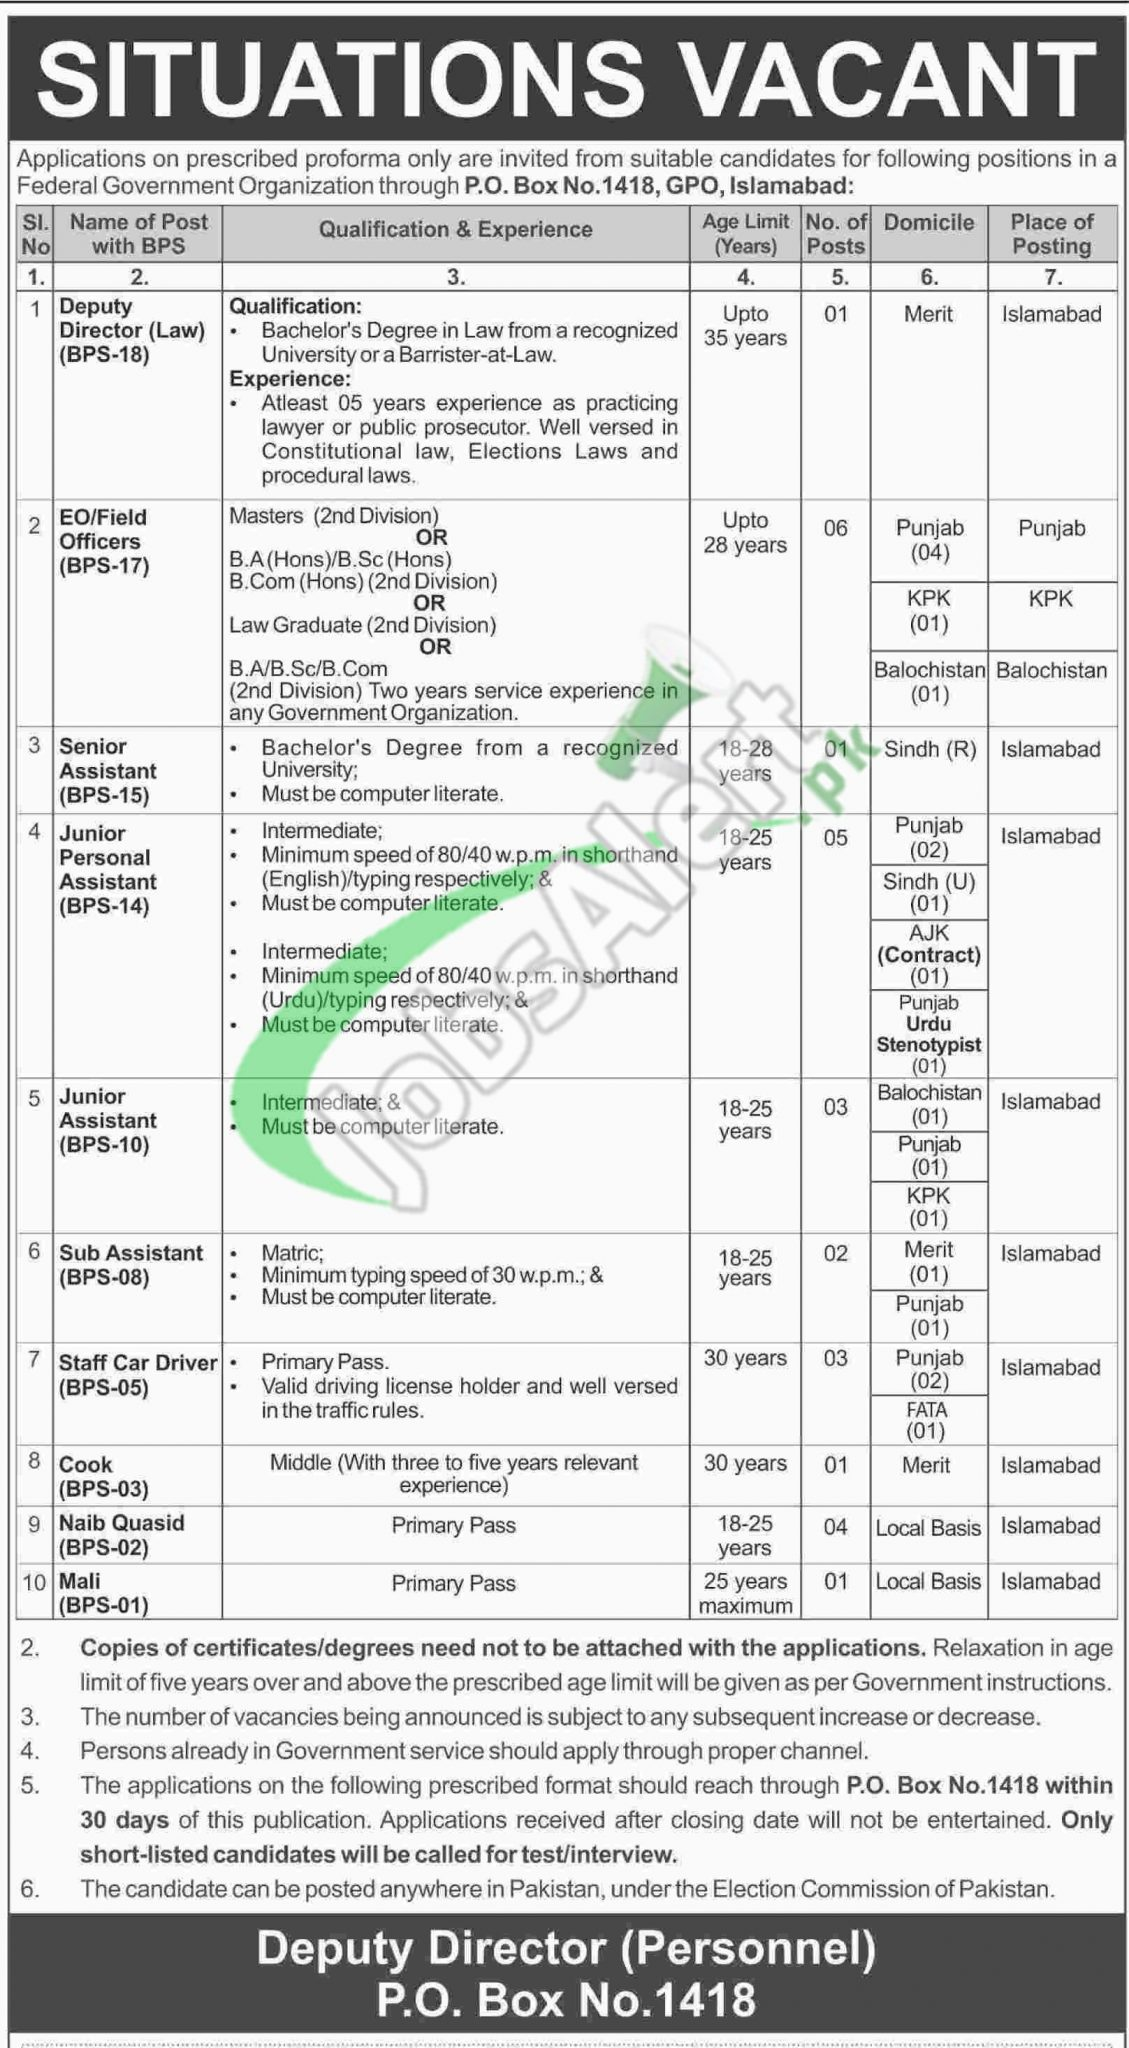 federal government organization jobs 2016 application form federal government organization jobs 2016 application form latest